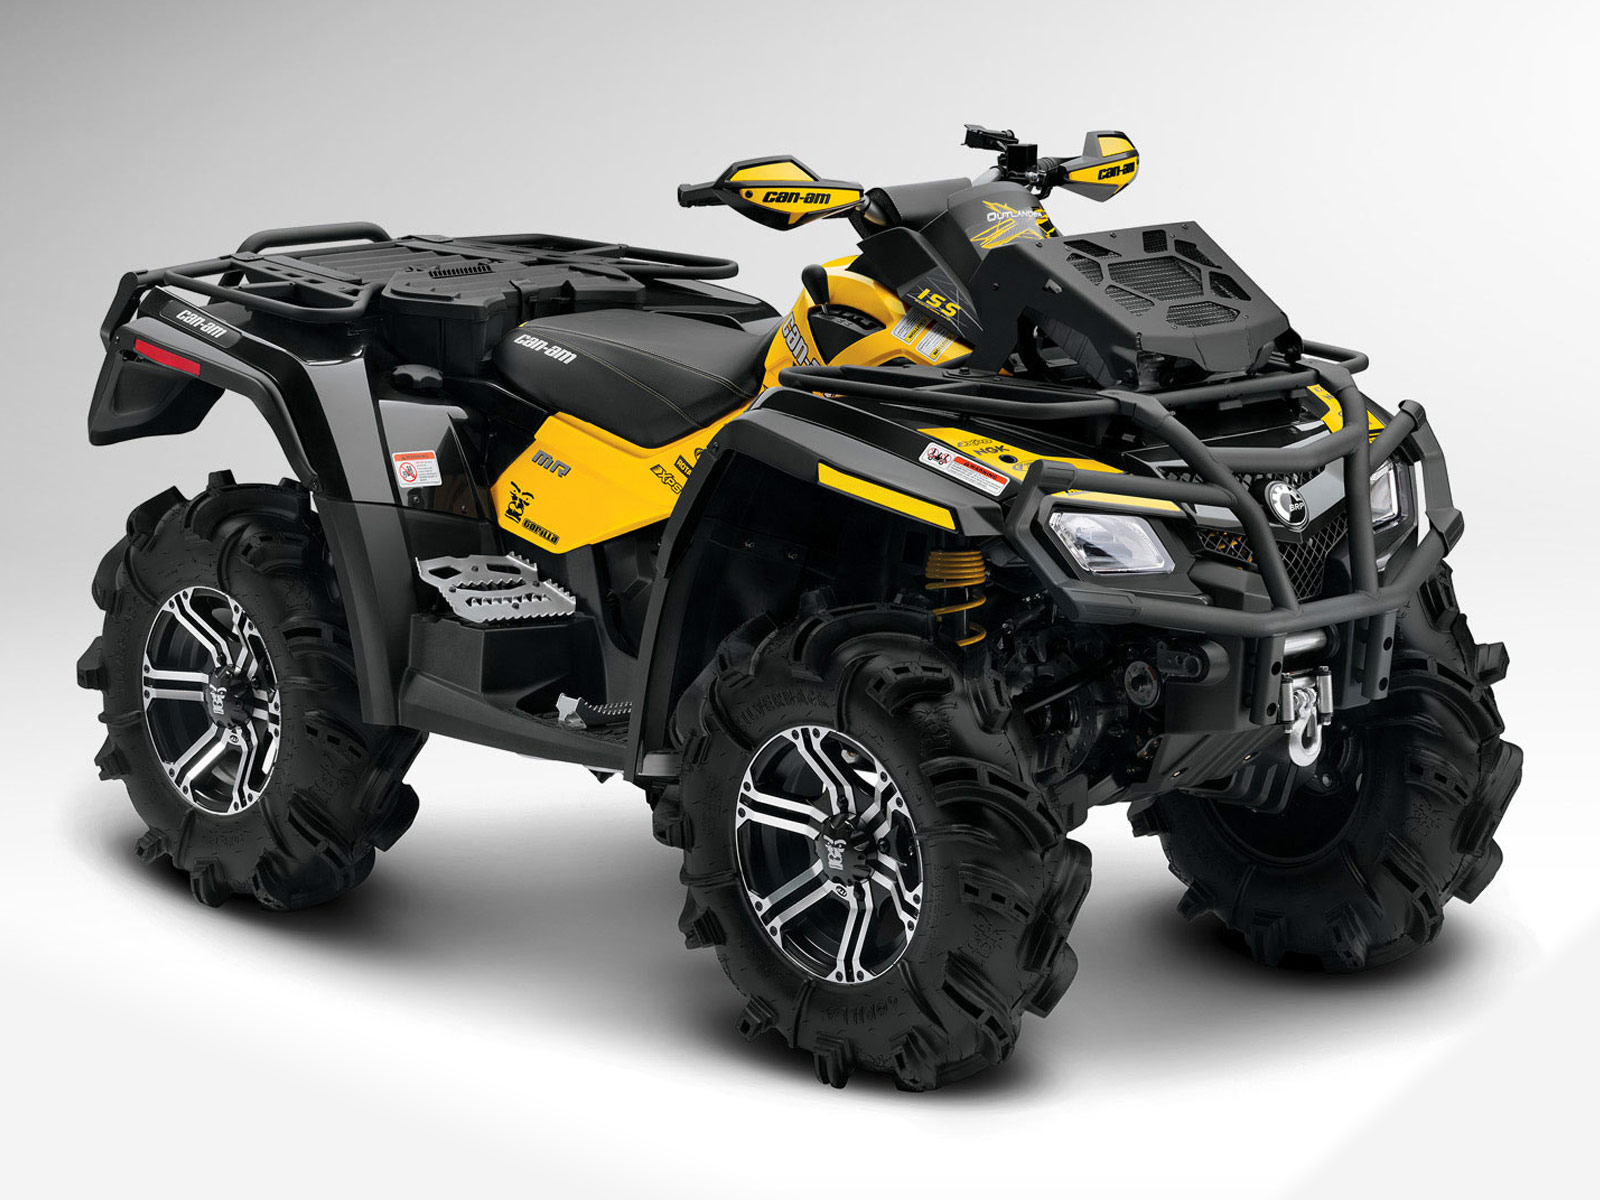 2012 can am outlander 800r x mr atv pictures specs. Black Bedroom Furniture Sets. Home Design Ideas